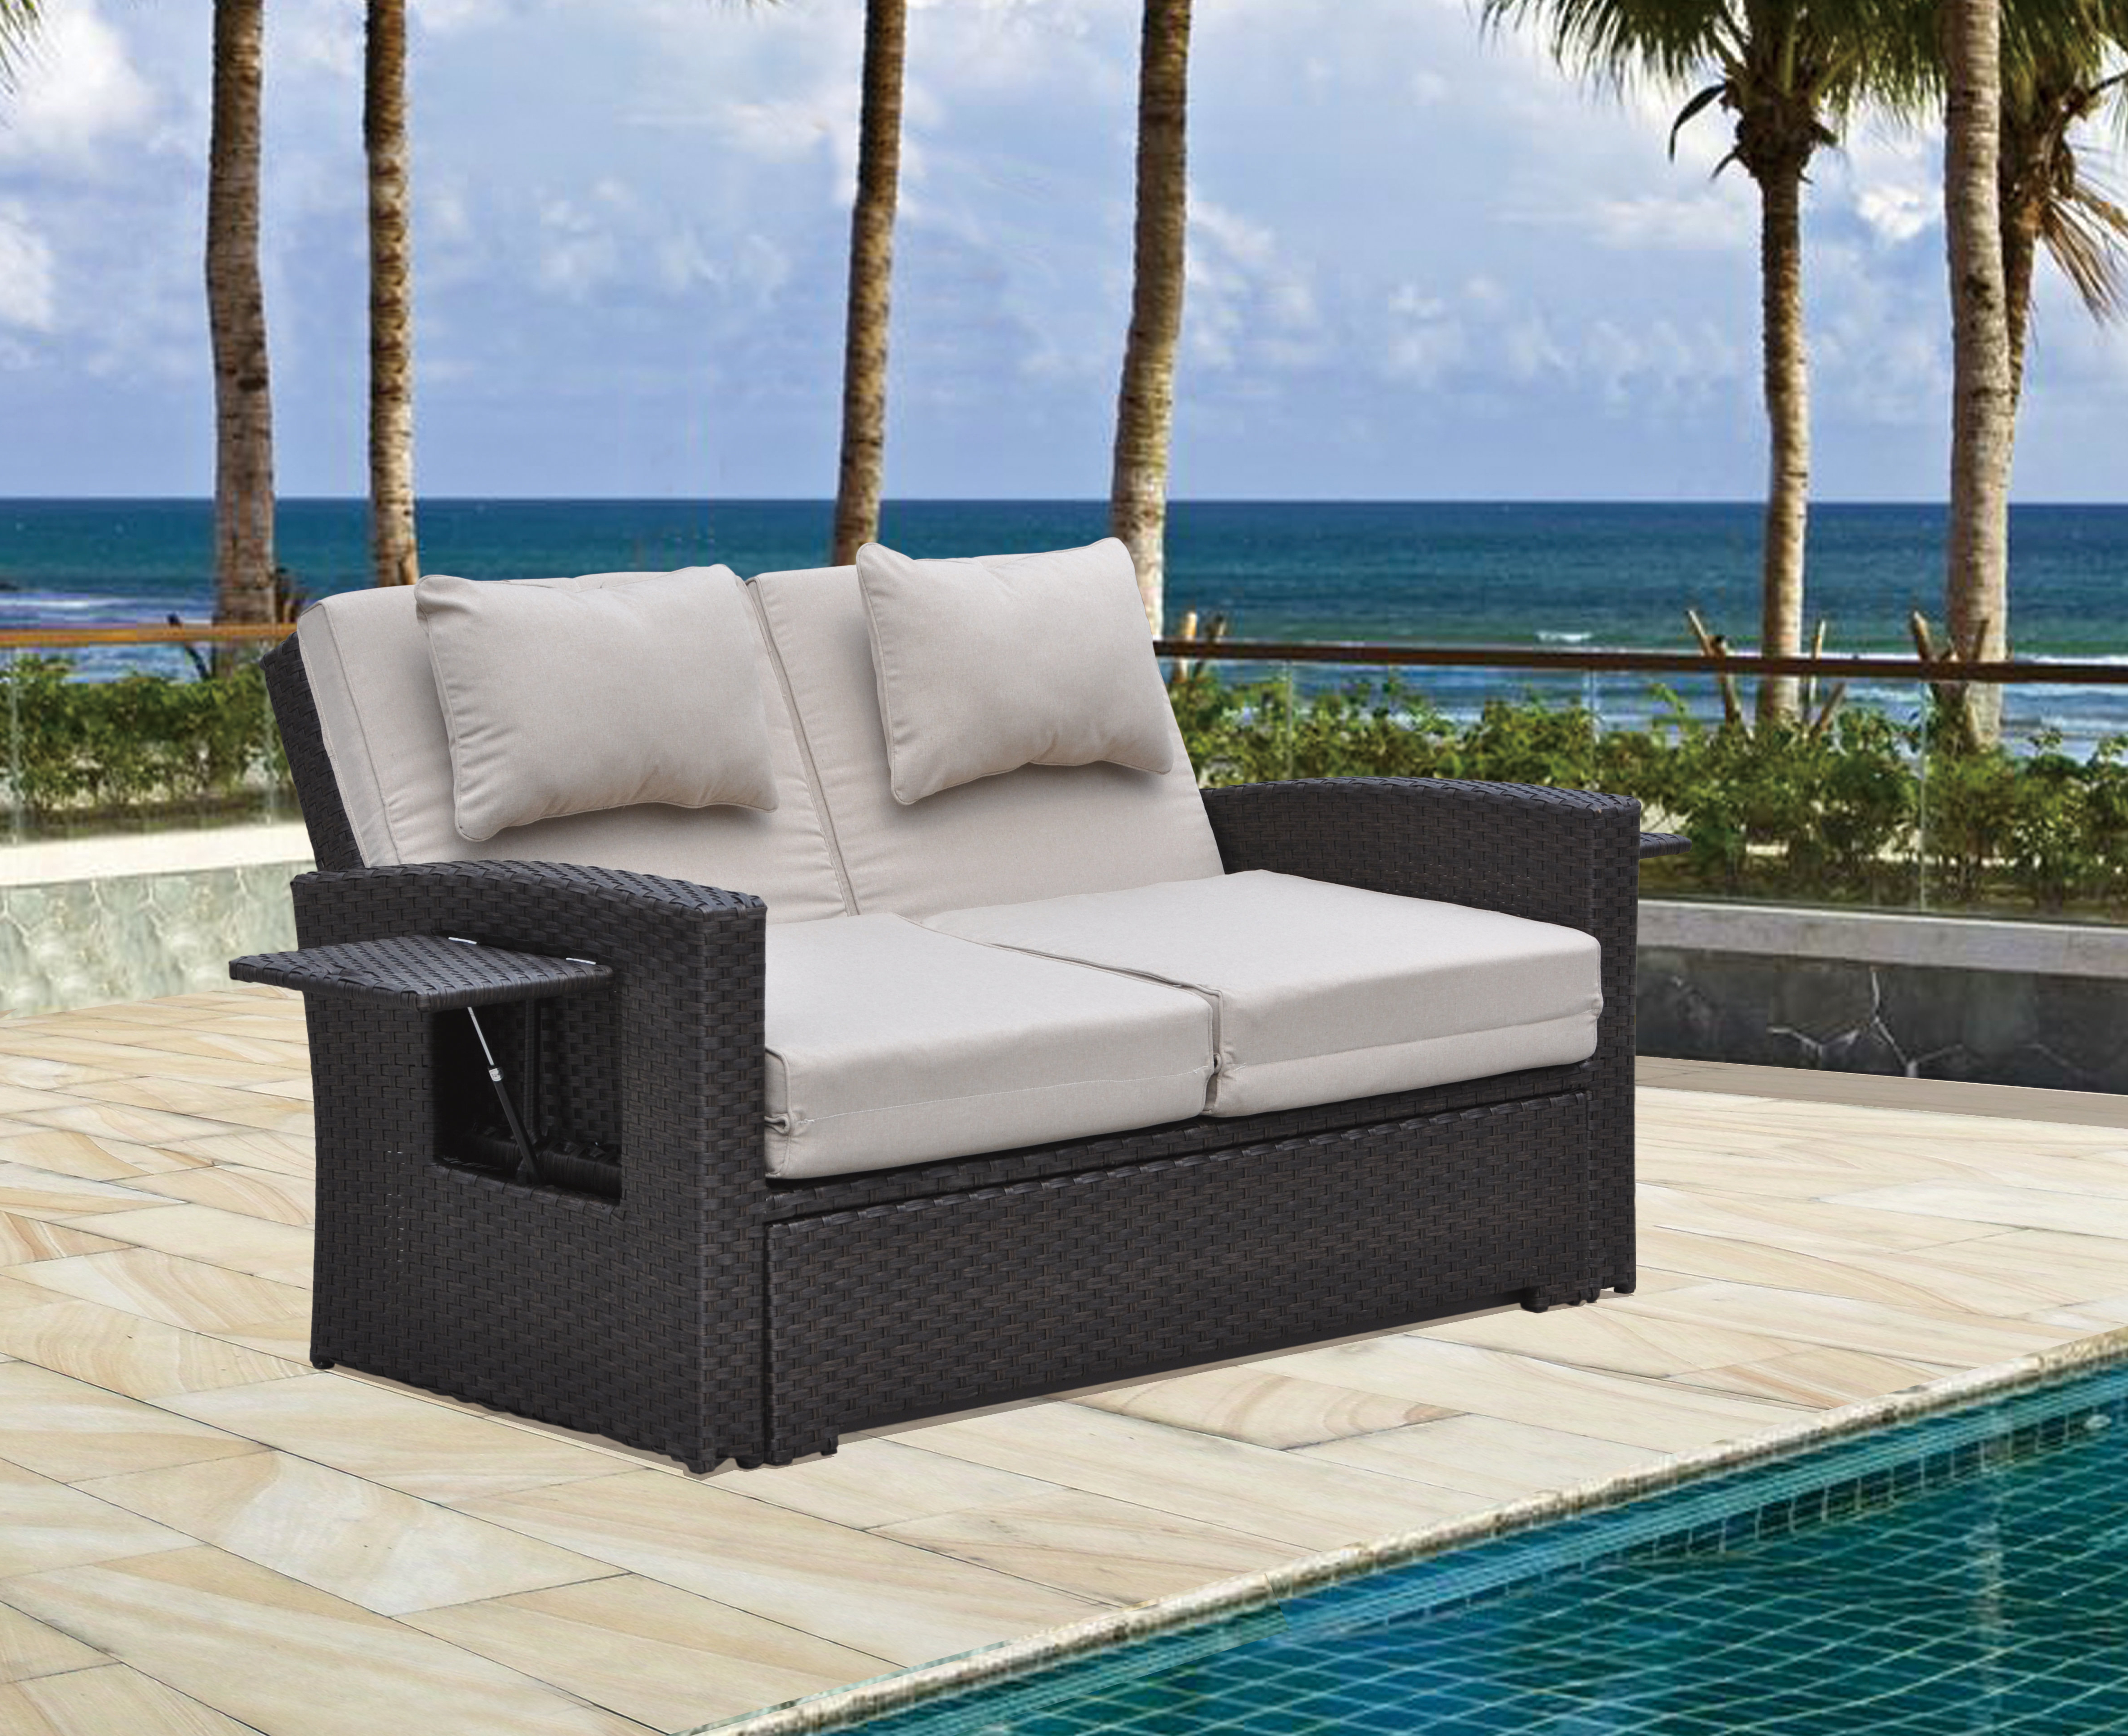 Betts Outdoor Loveseat With Cushions With Regard To Famous Tripp Loveseats With Cushions (View 18 of 20)